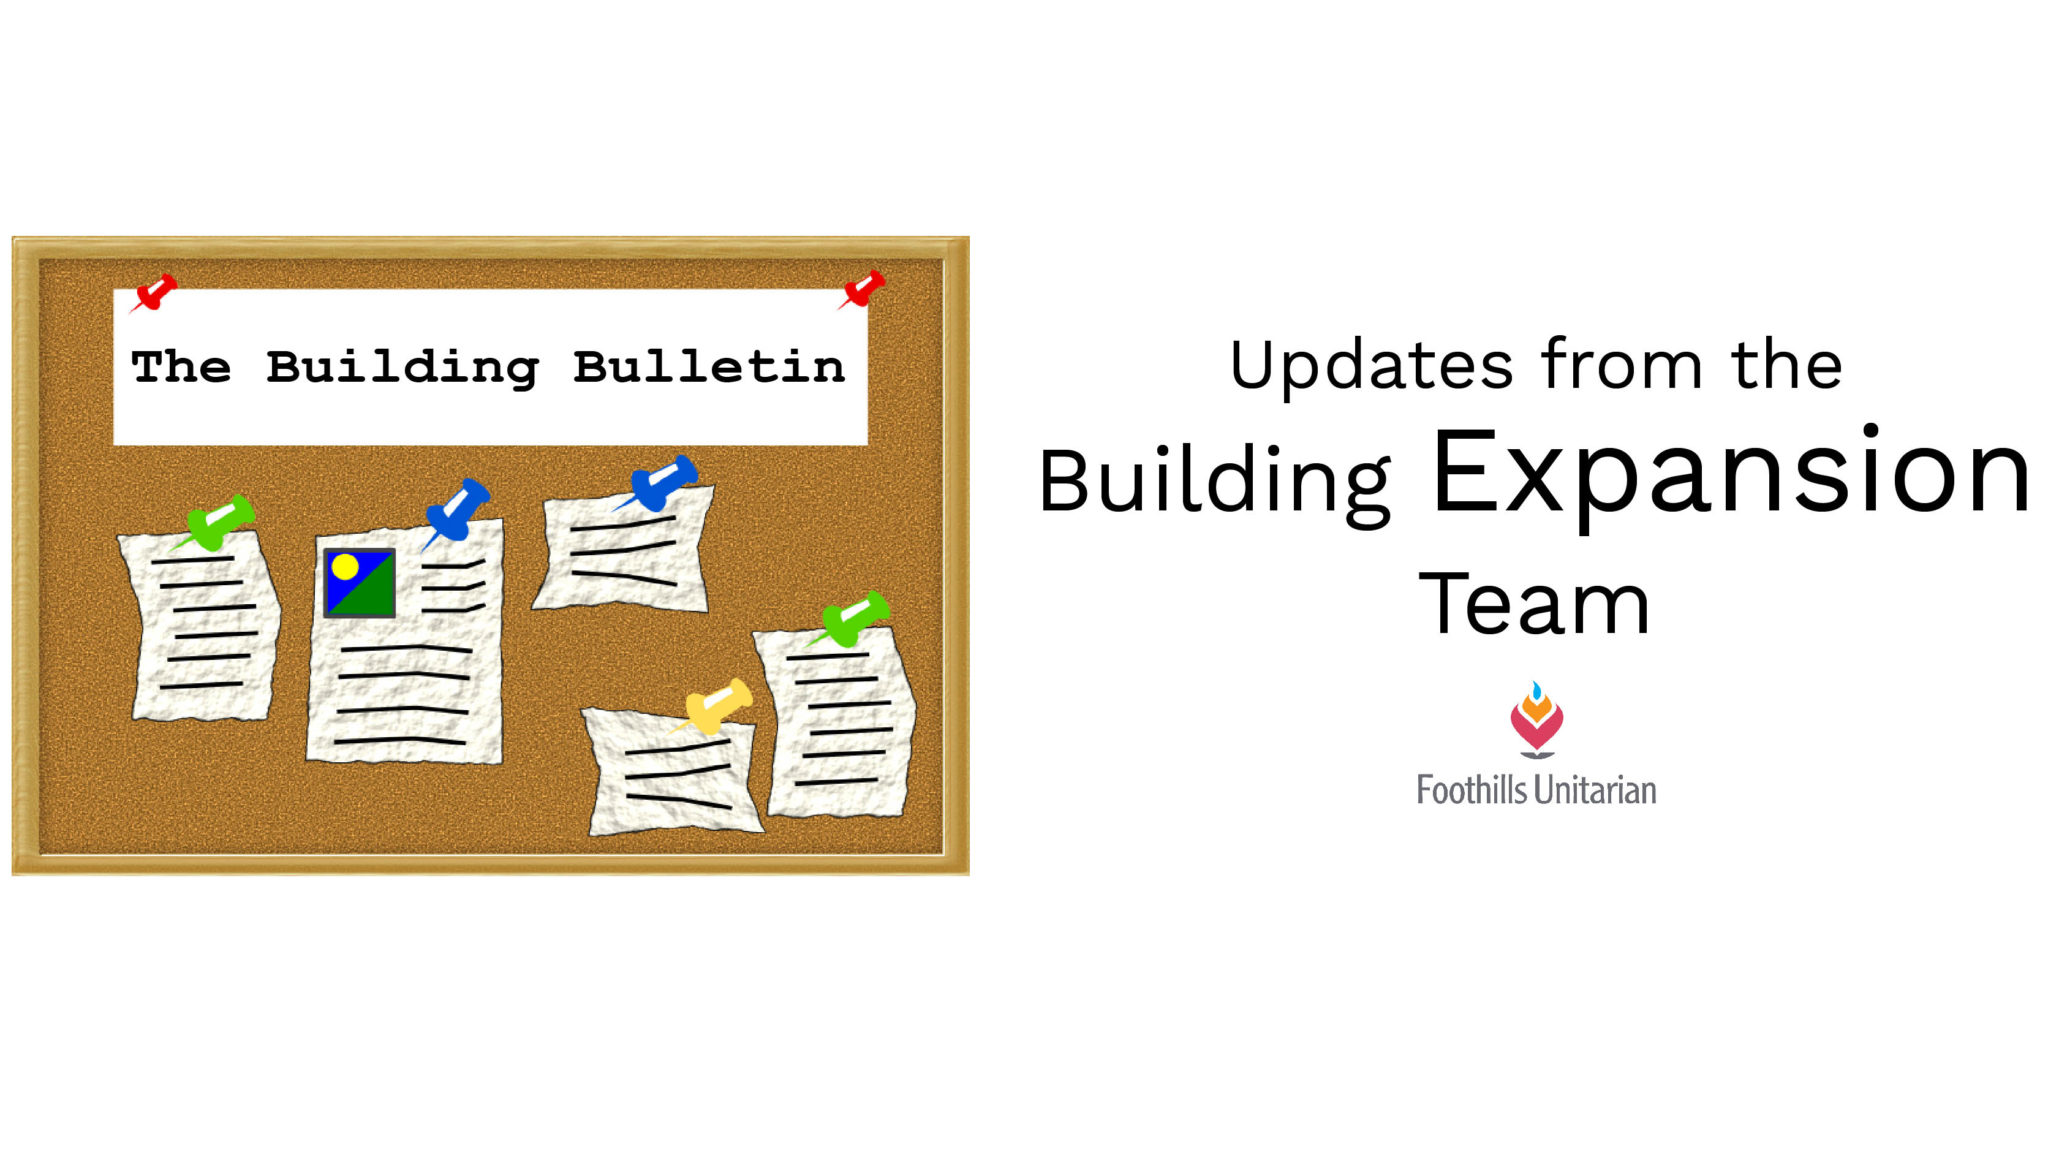 The Building Bulletin for March 2019